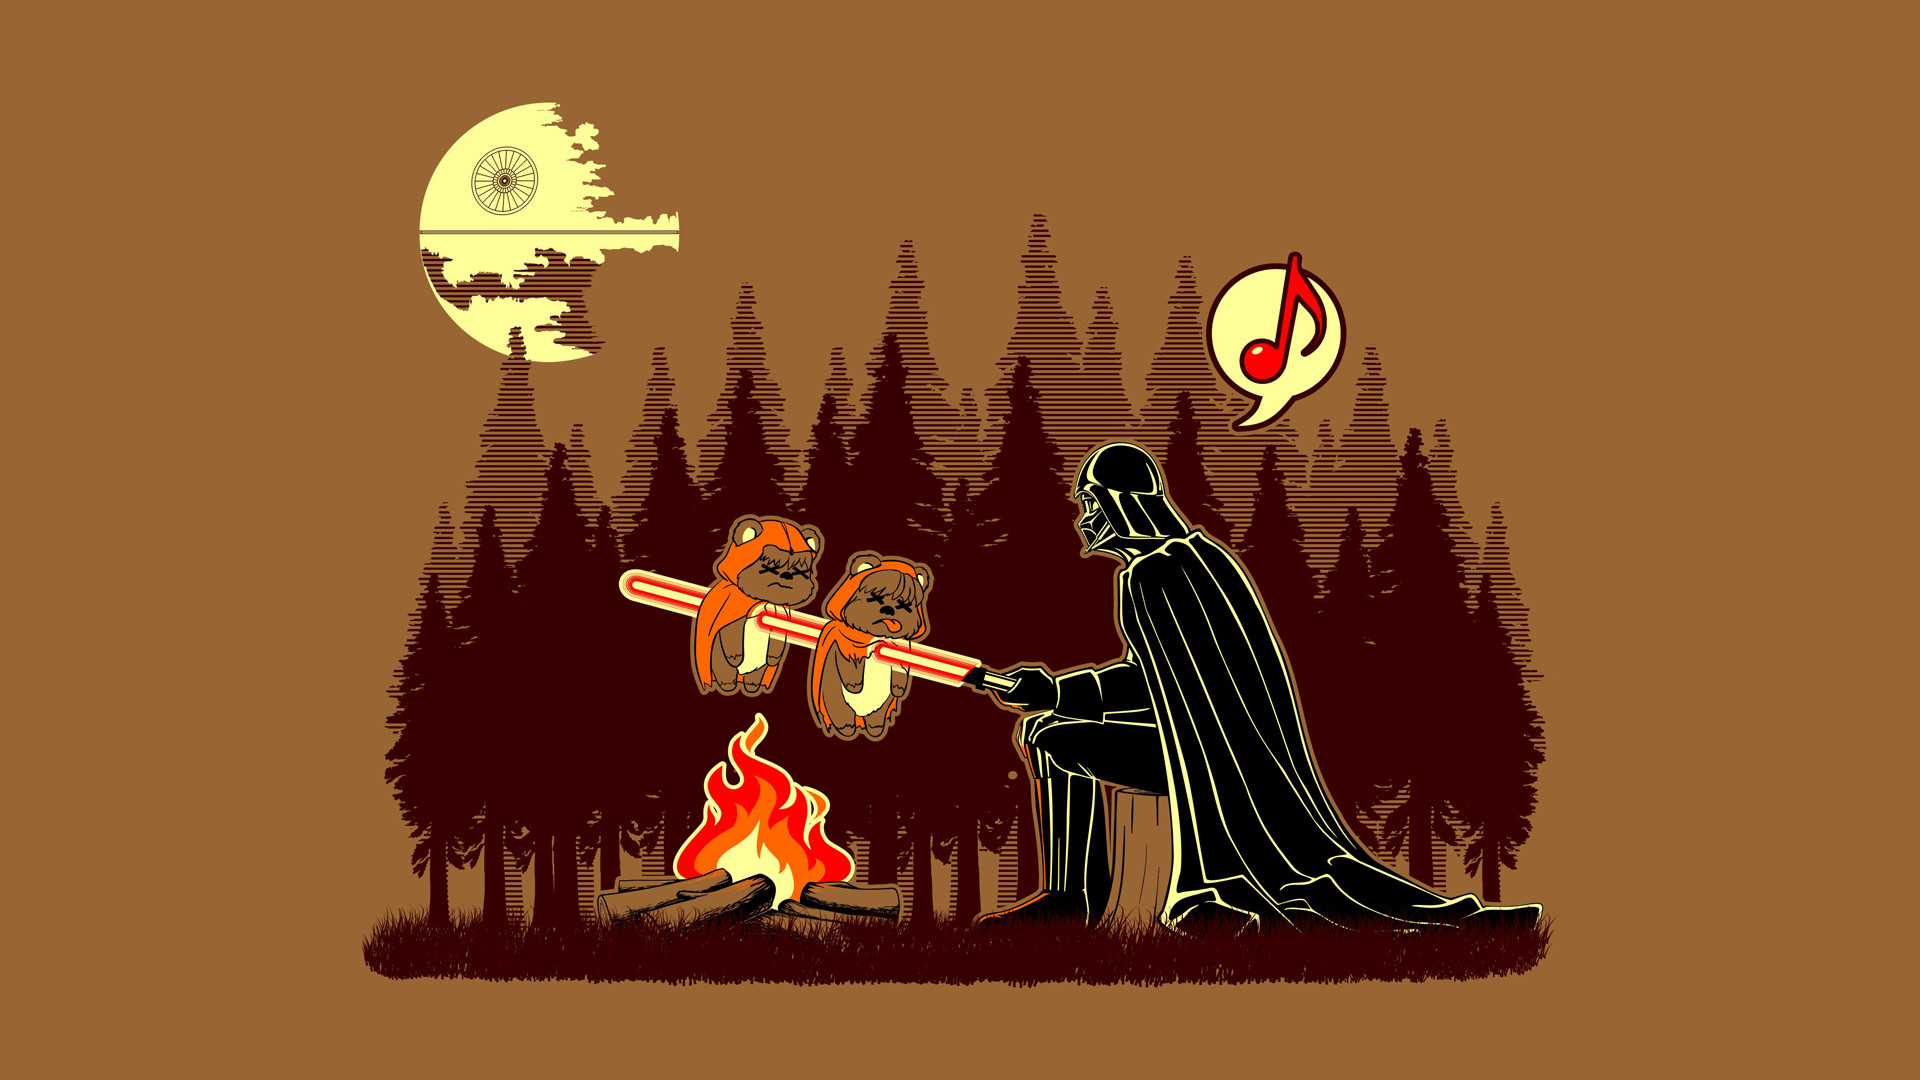 Funny Star Wars Wallpaper ·① WallpaperTag